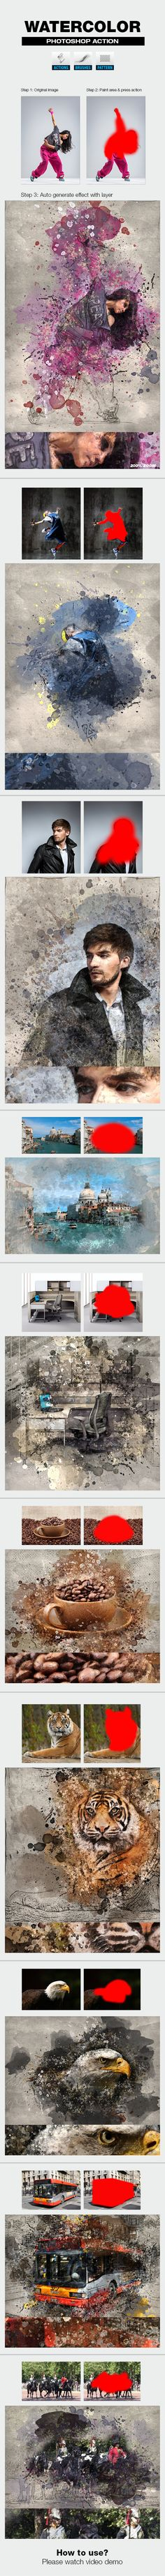 Watercolor - Actions Photoshop